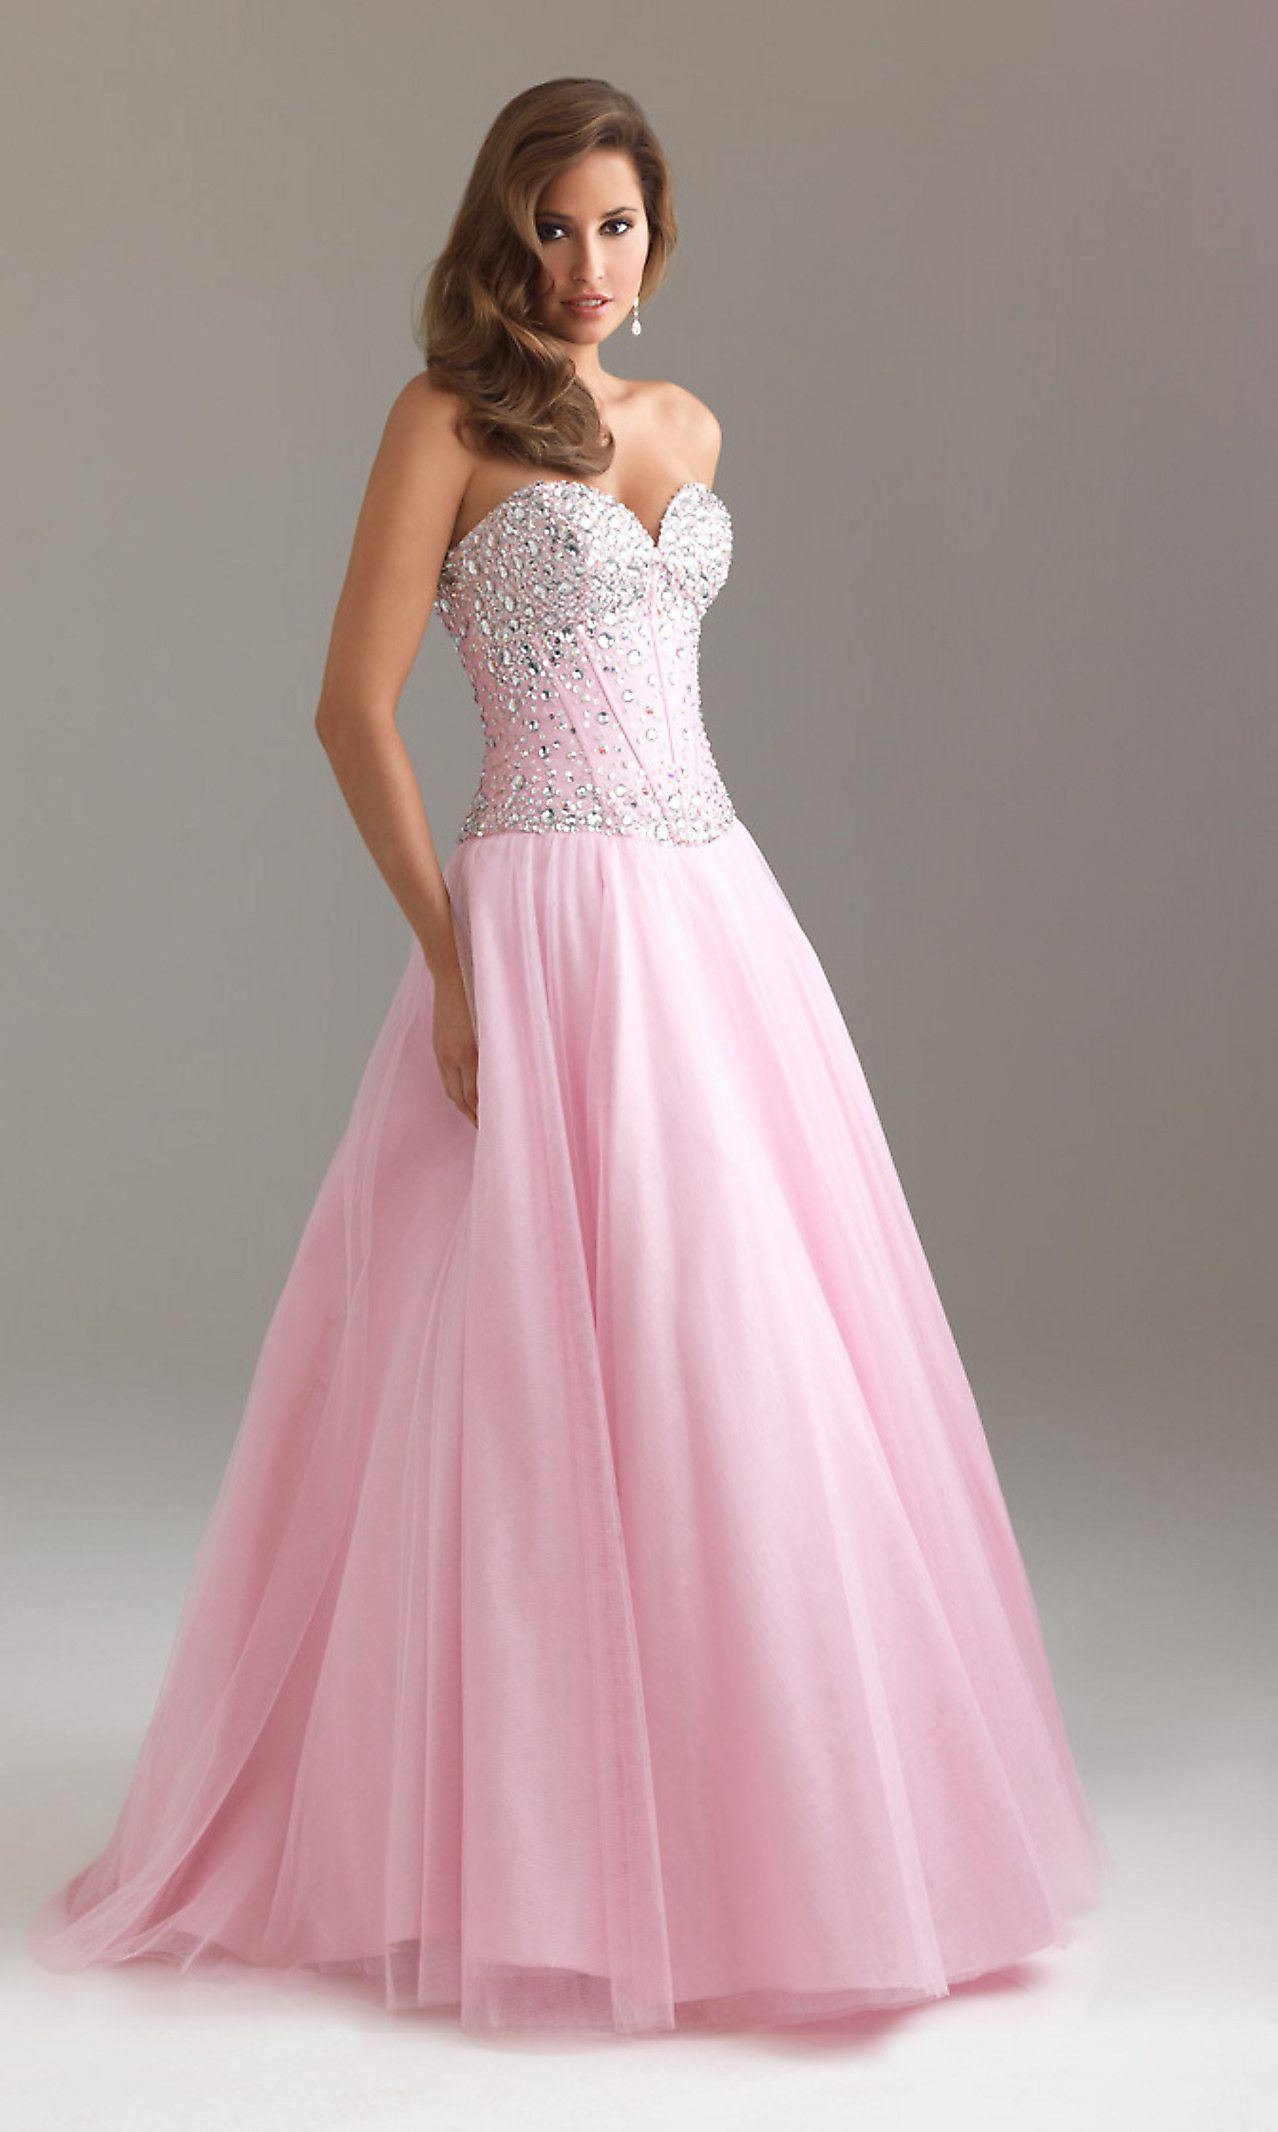 Most every girl dreams of wearing something this elegant and ...